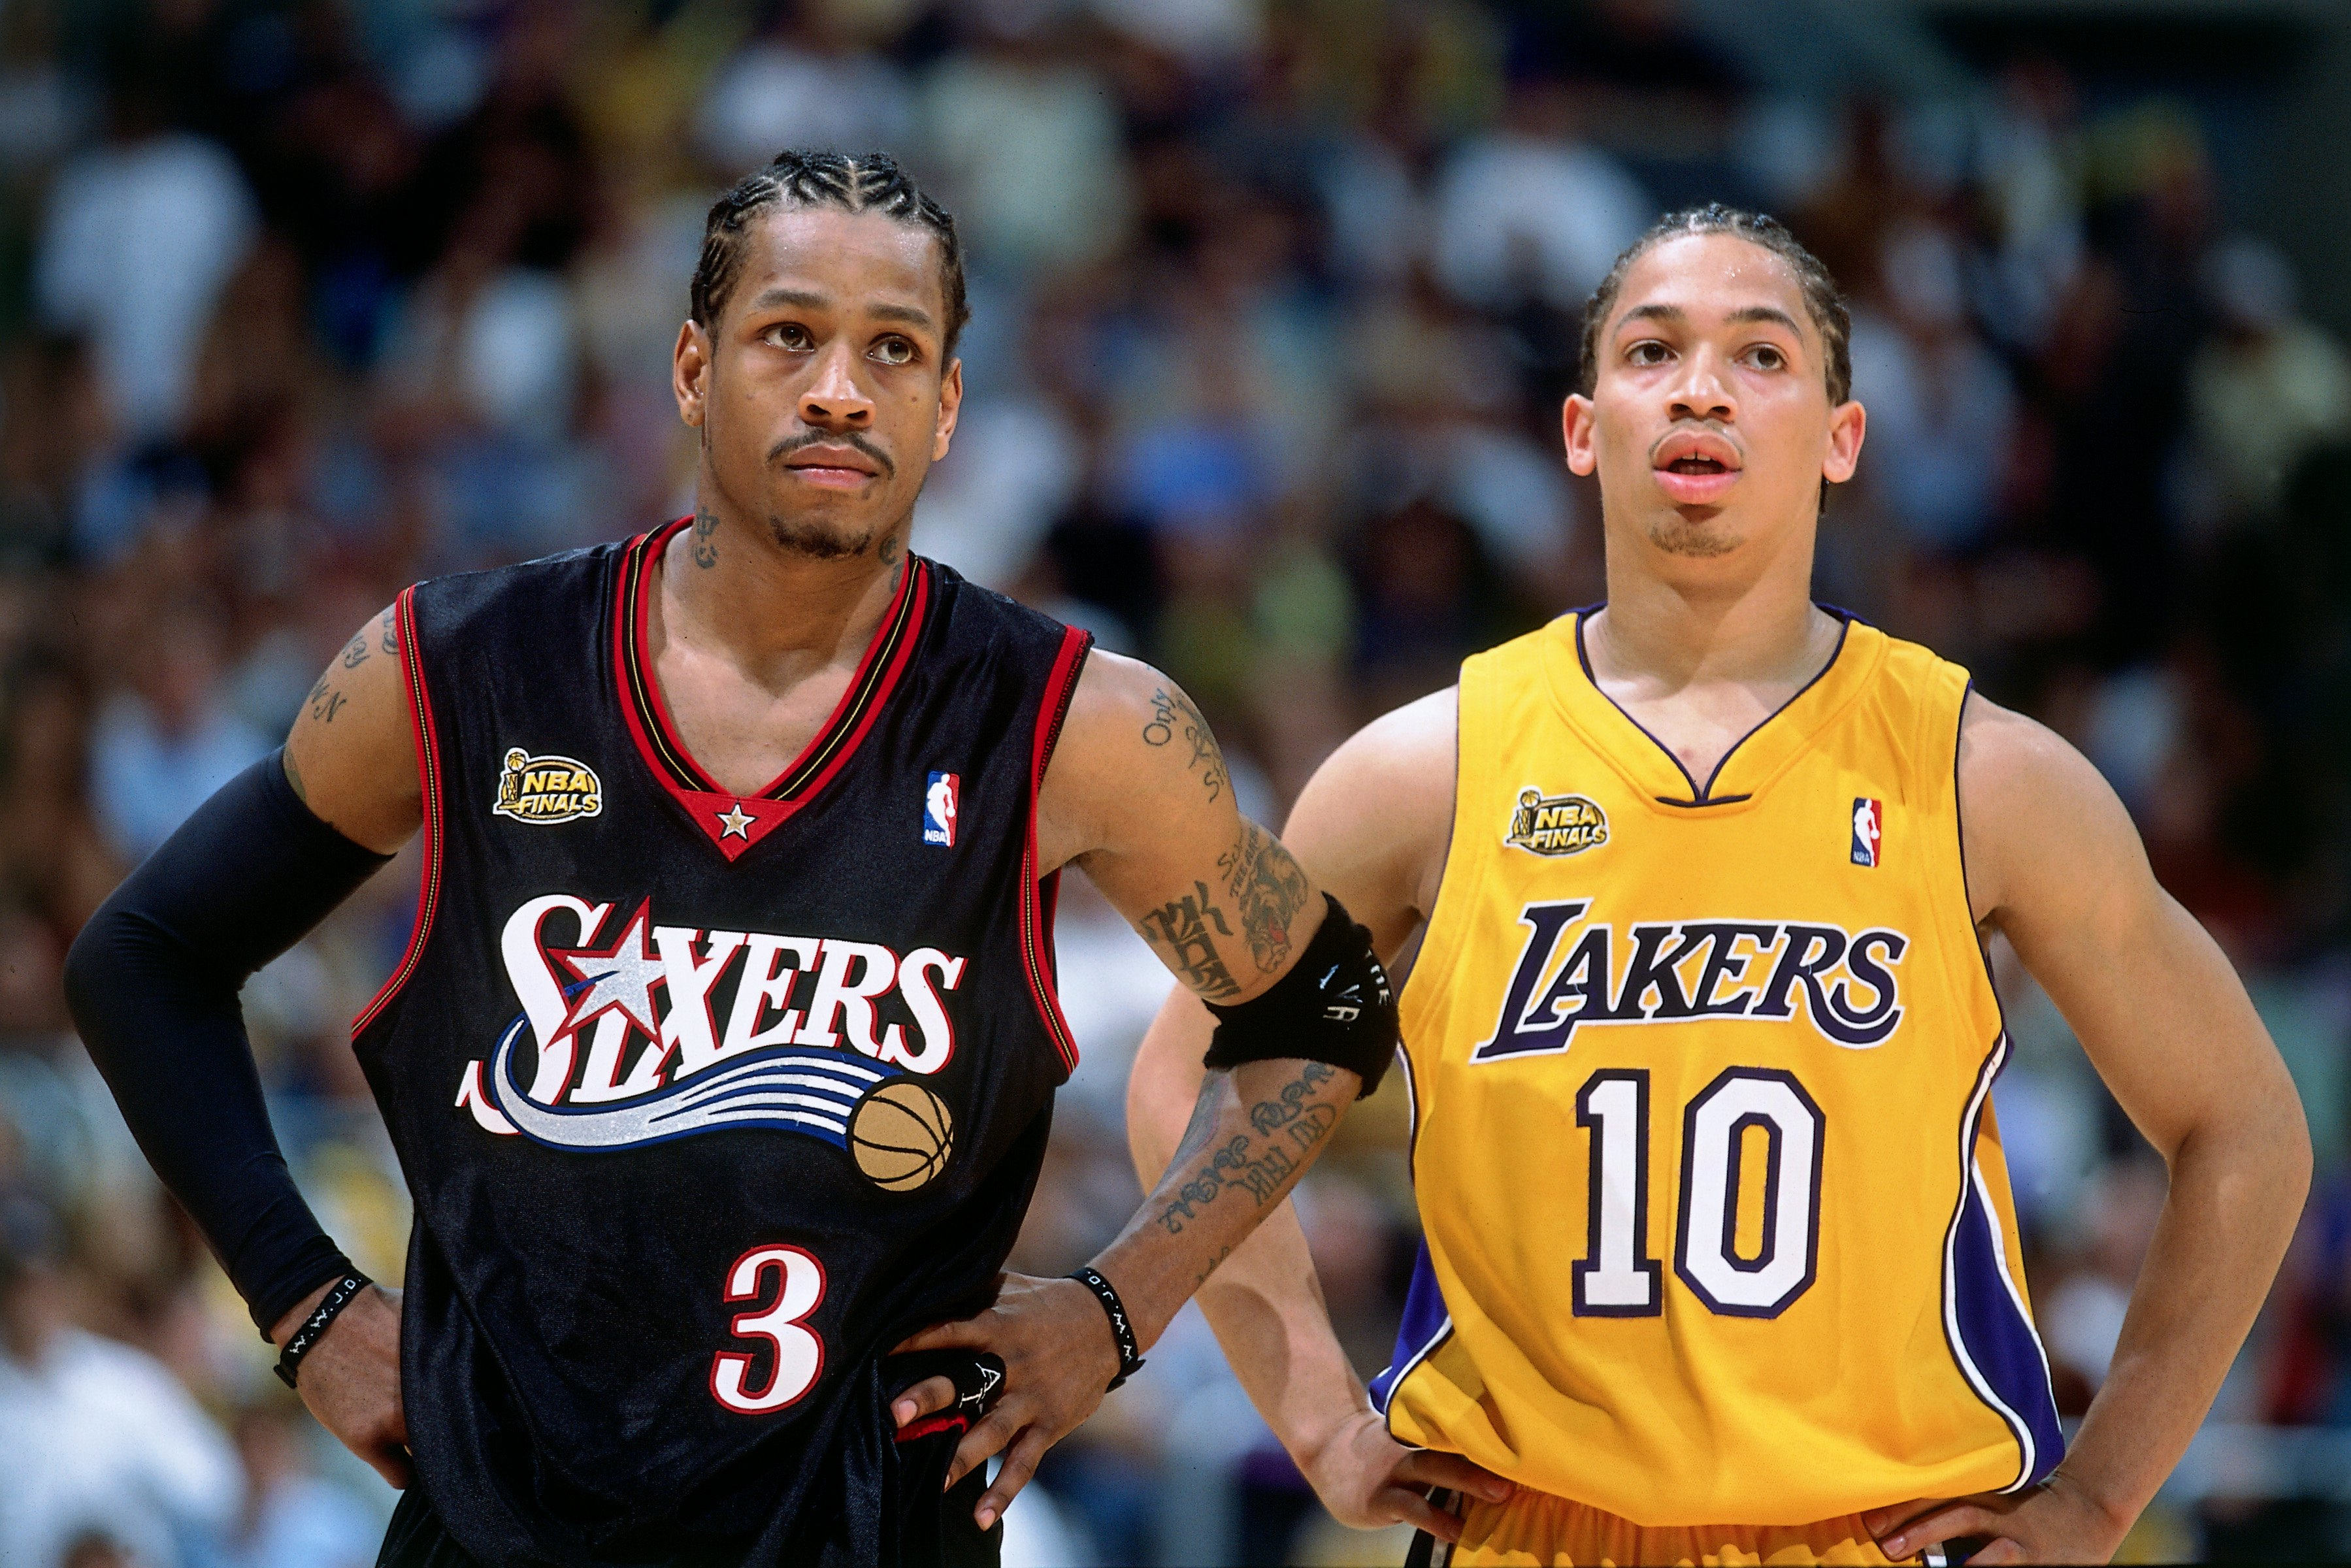 2001 NBA Finals: Philadelphia 76ers vs. Los Angeles Lakers